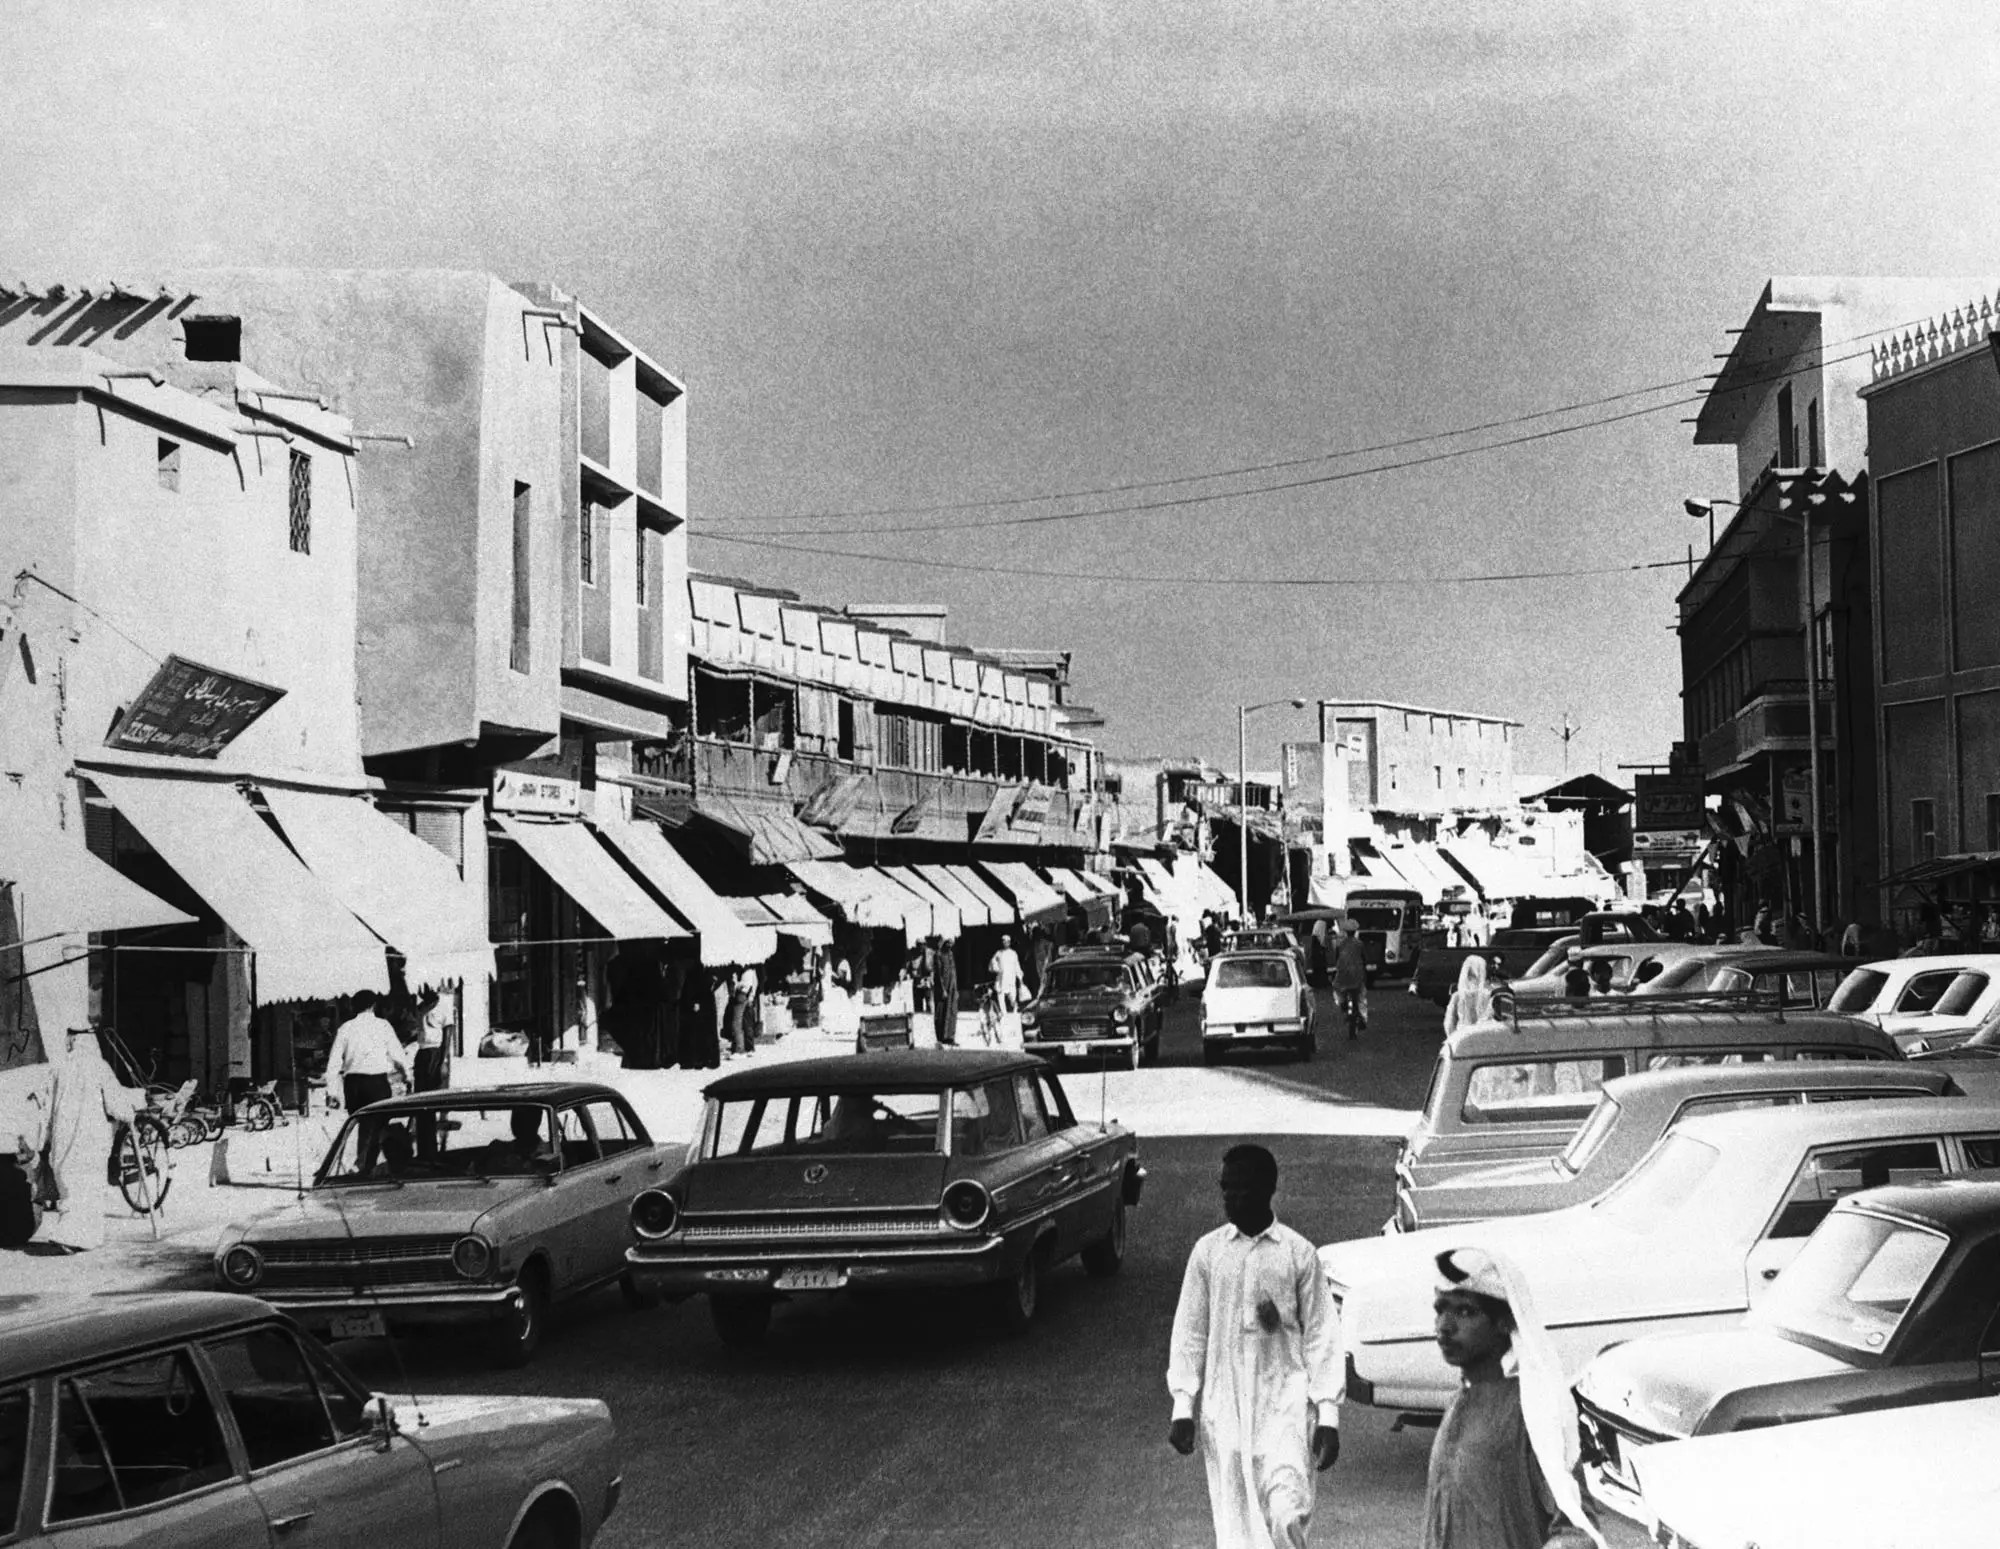 THEN: Here's what the heart of Doha's commercial center looked like back in 1968.